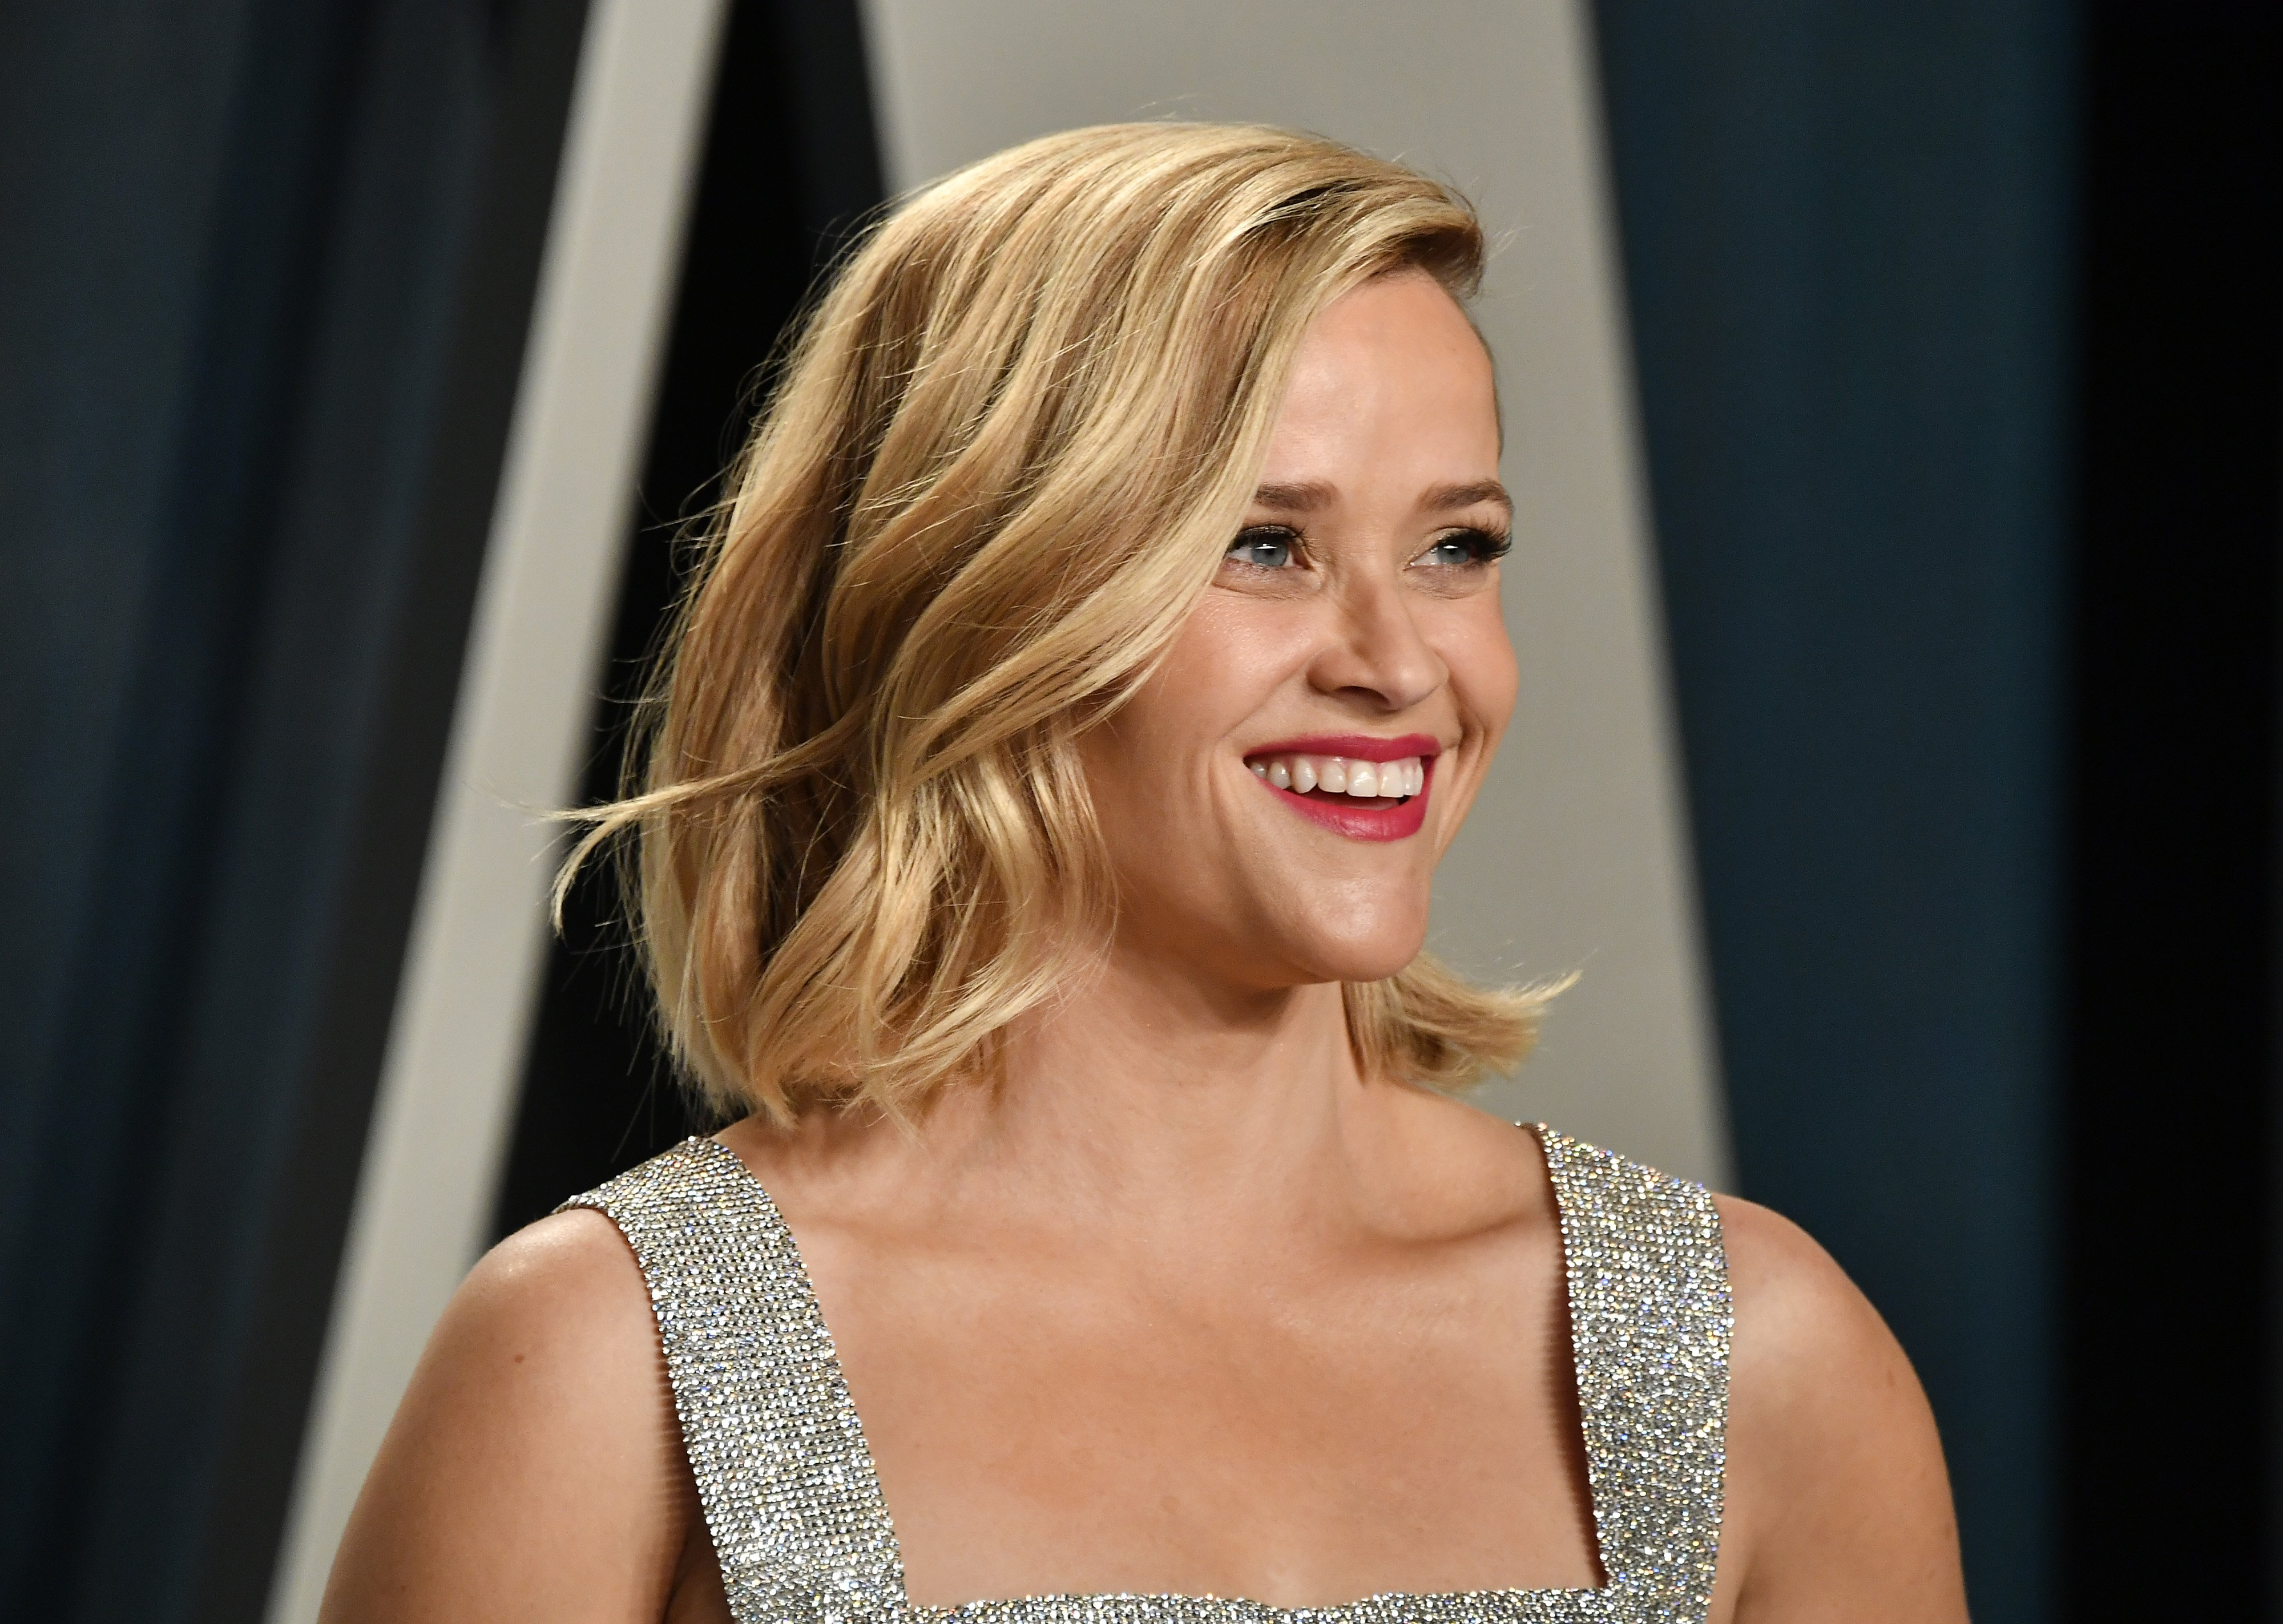 Reese Witherspoon attends the 2020 Vanity Fair Oscar Party at Wallis Annenberg Center on February 09, 2020 in Beverly Hills, California   Photo: Getty Images